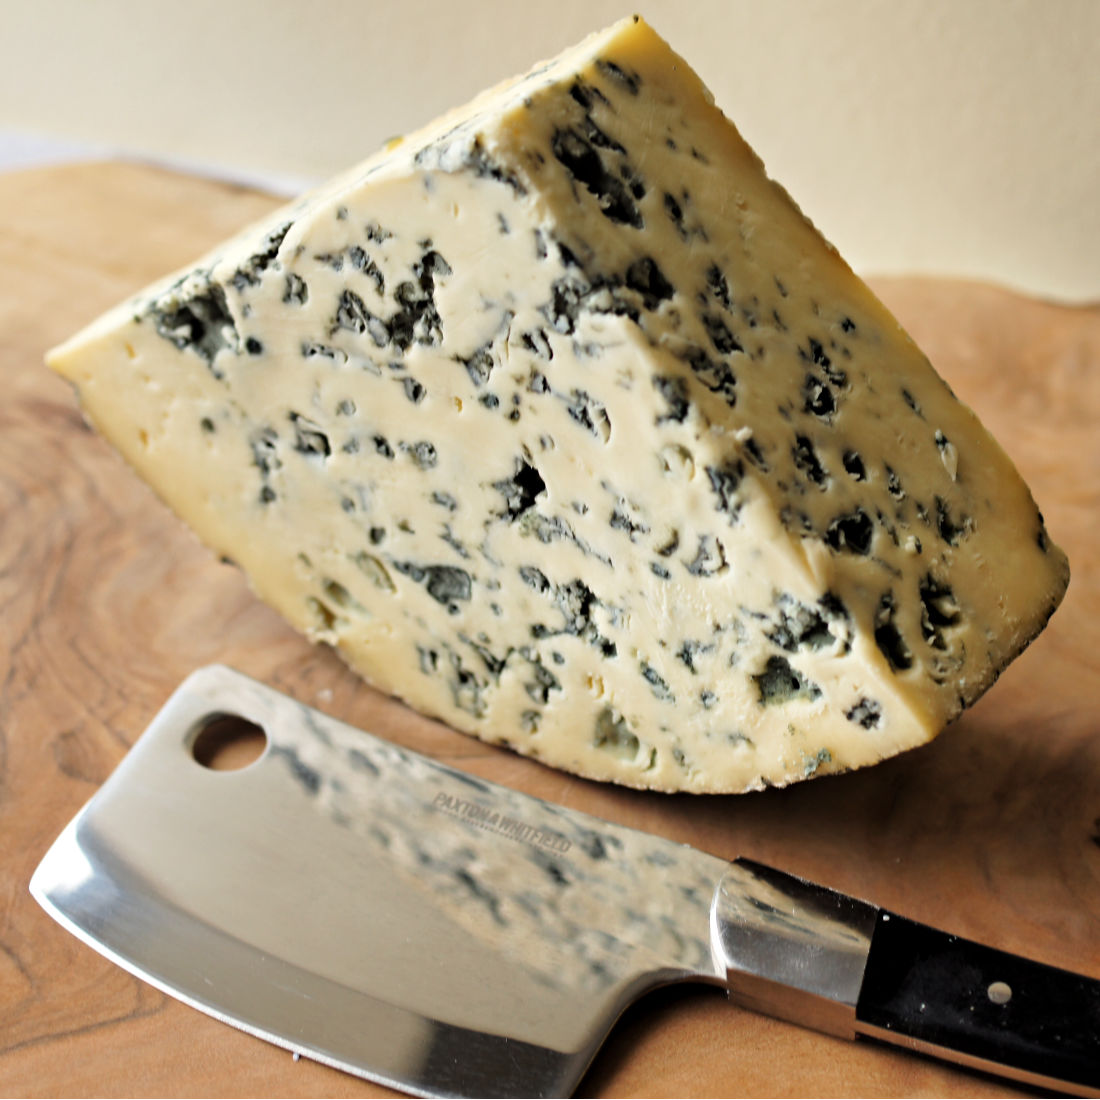 131-Perl-Las-Cheese-Low-Res